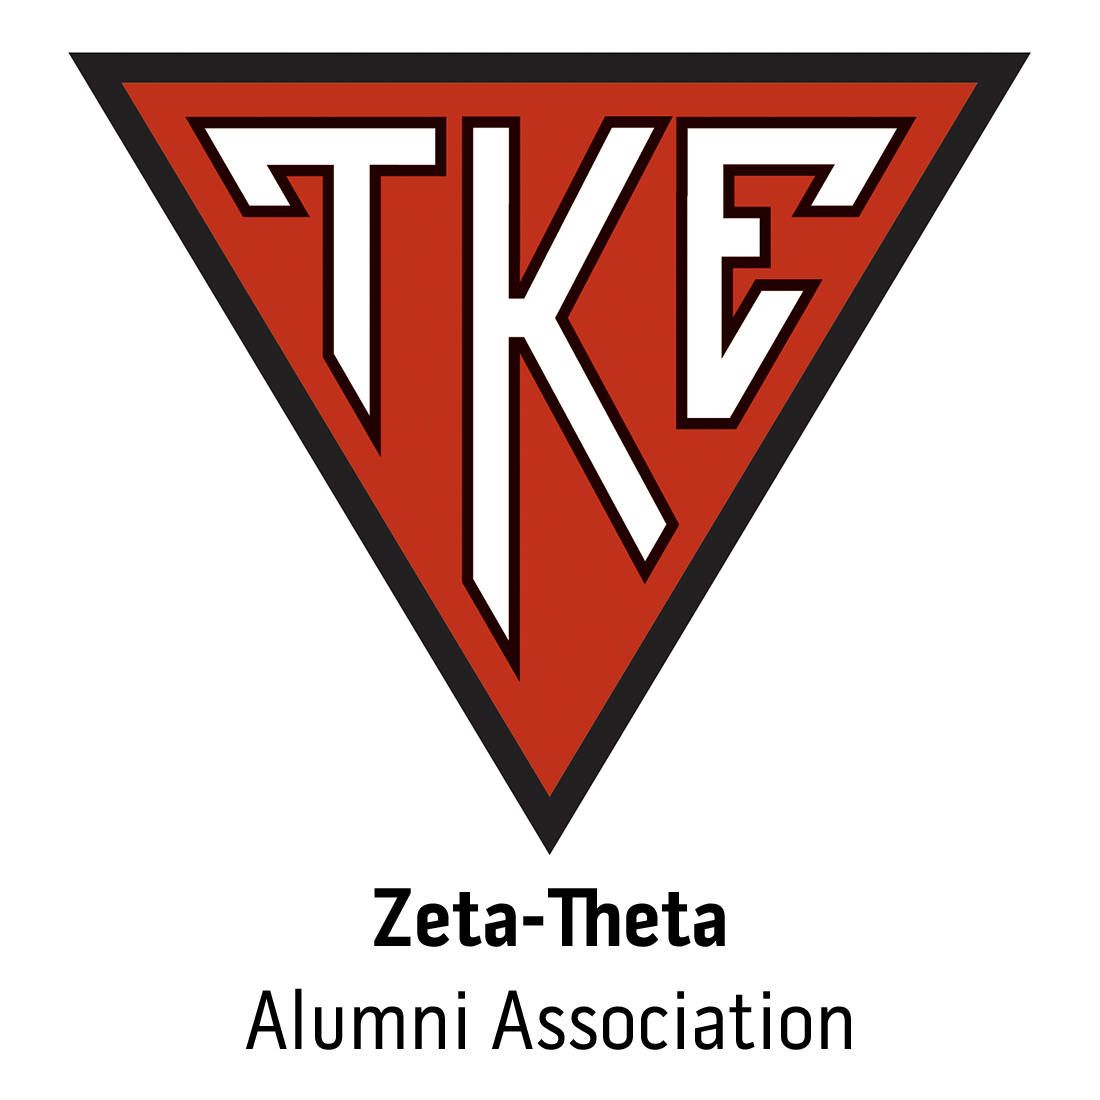 Zeta-Theta Alumni Association at Western Illinois University